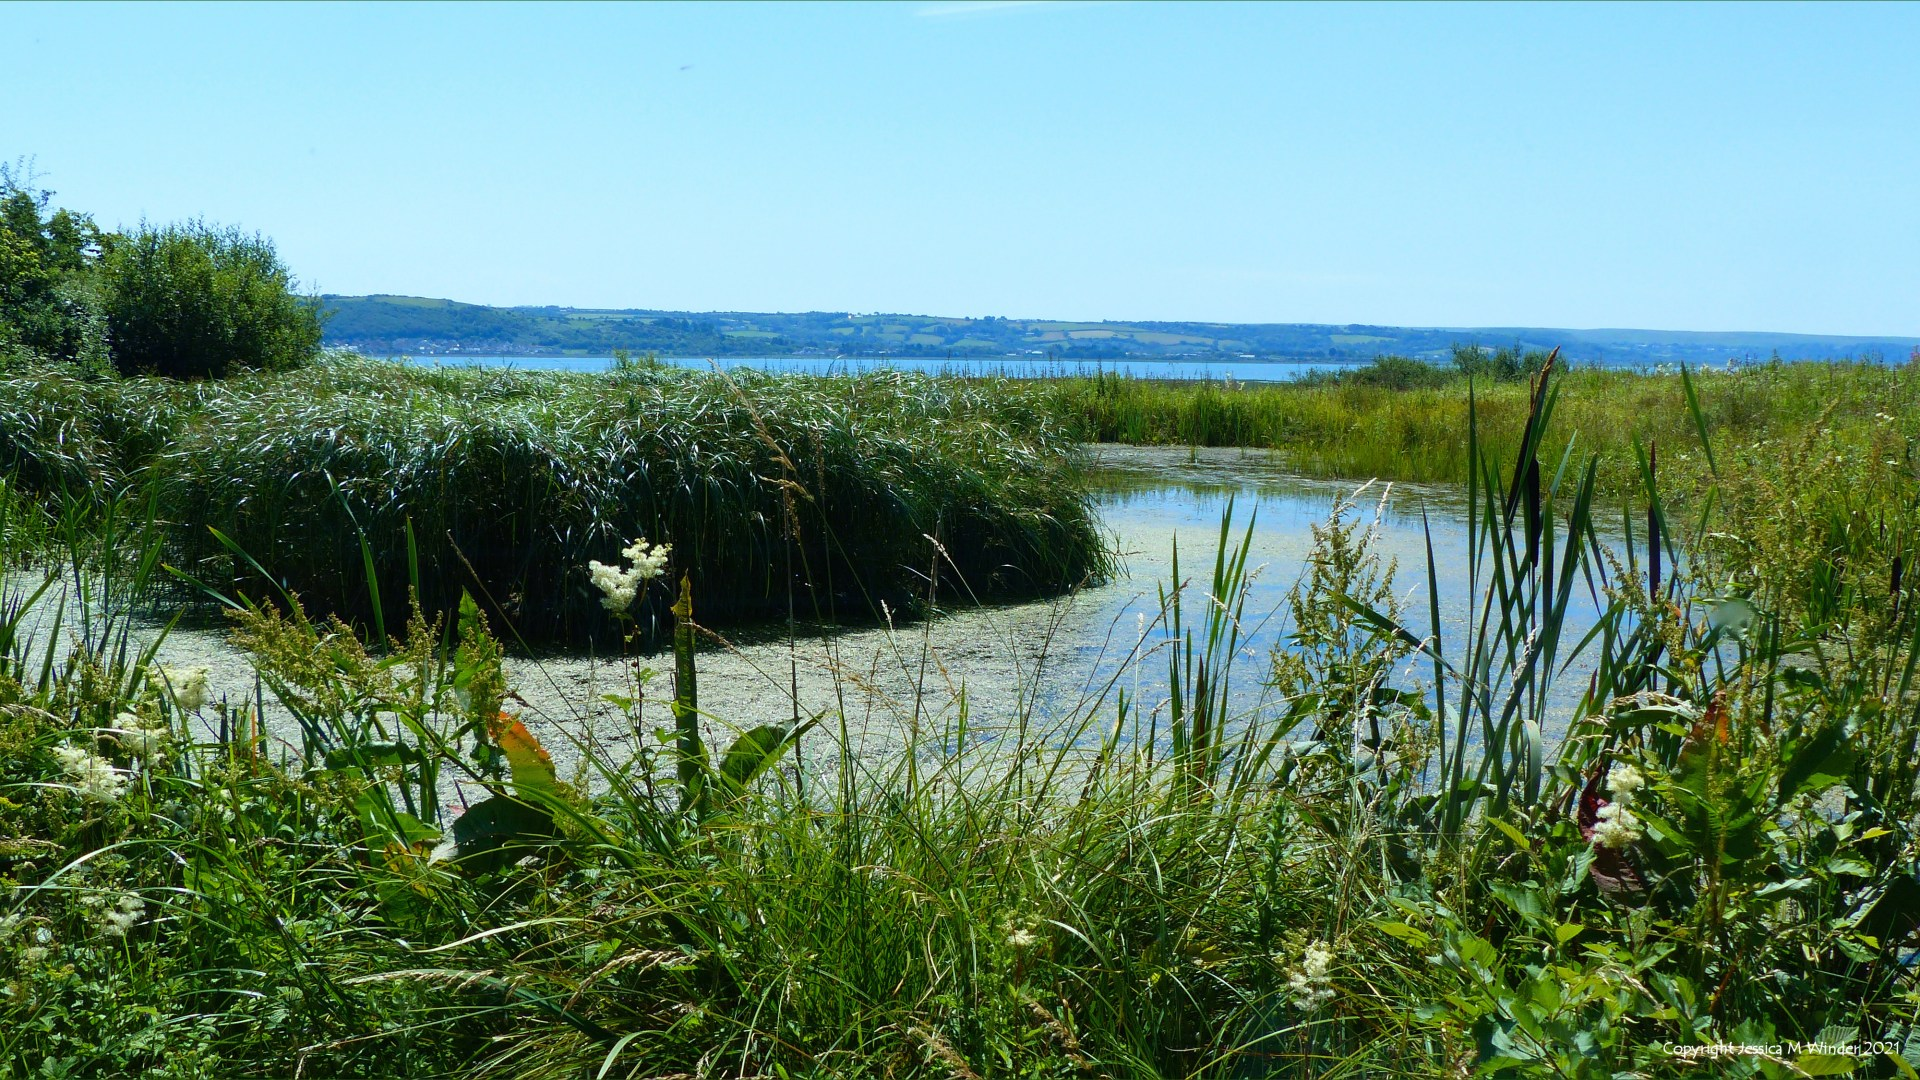 Pond, rushes, and wetland vegetation with sea and sky